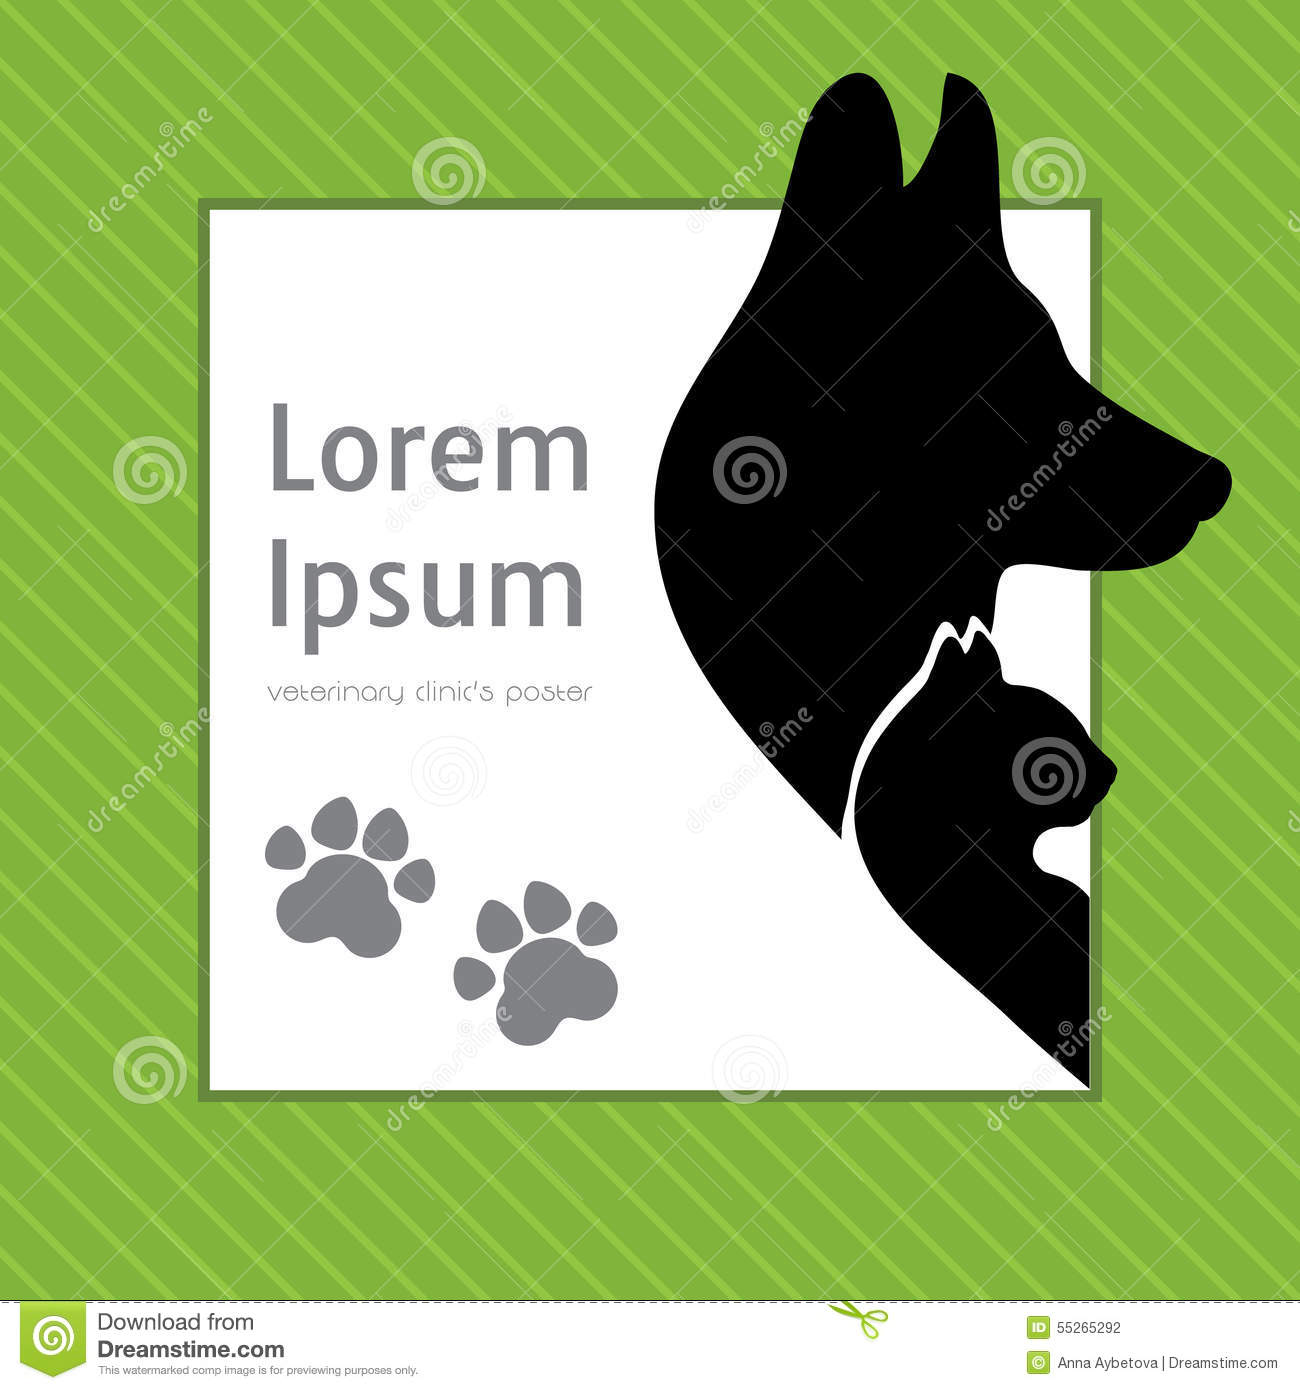 Silhouettes Of Cat And Dog On The Poster Template For Veterinary